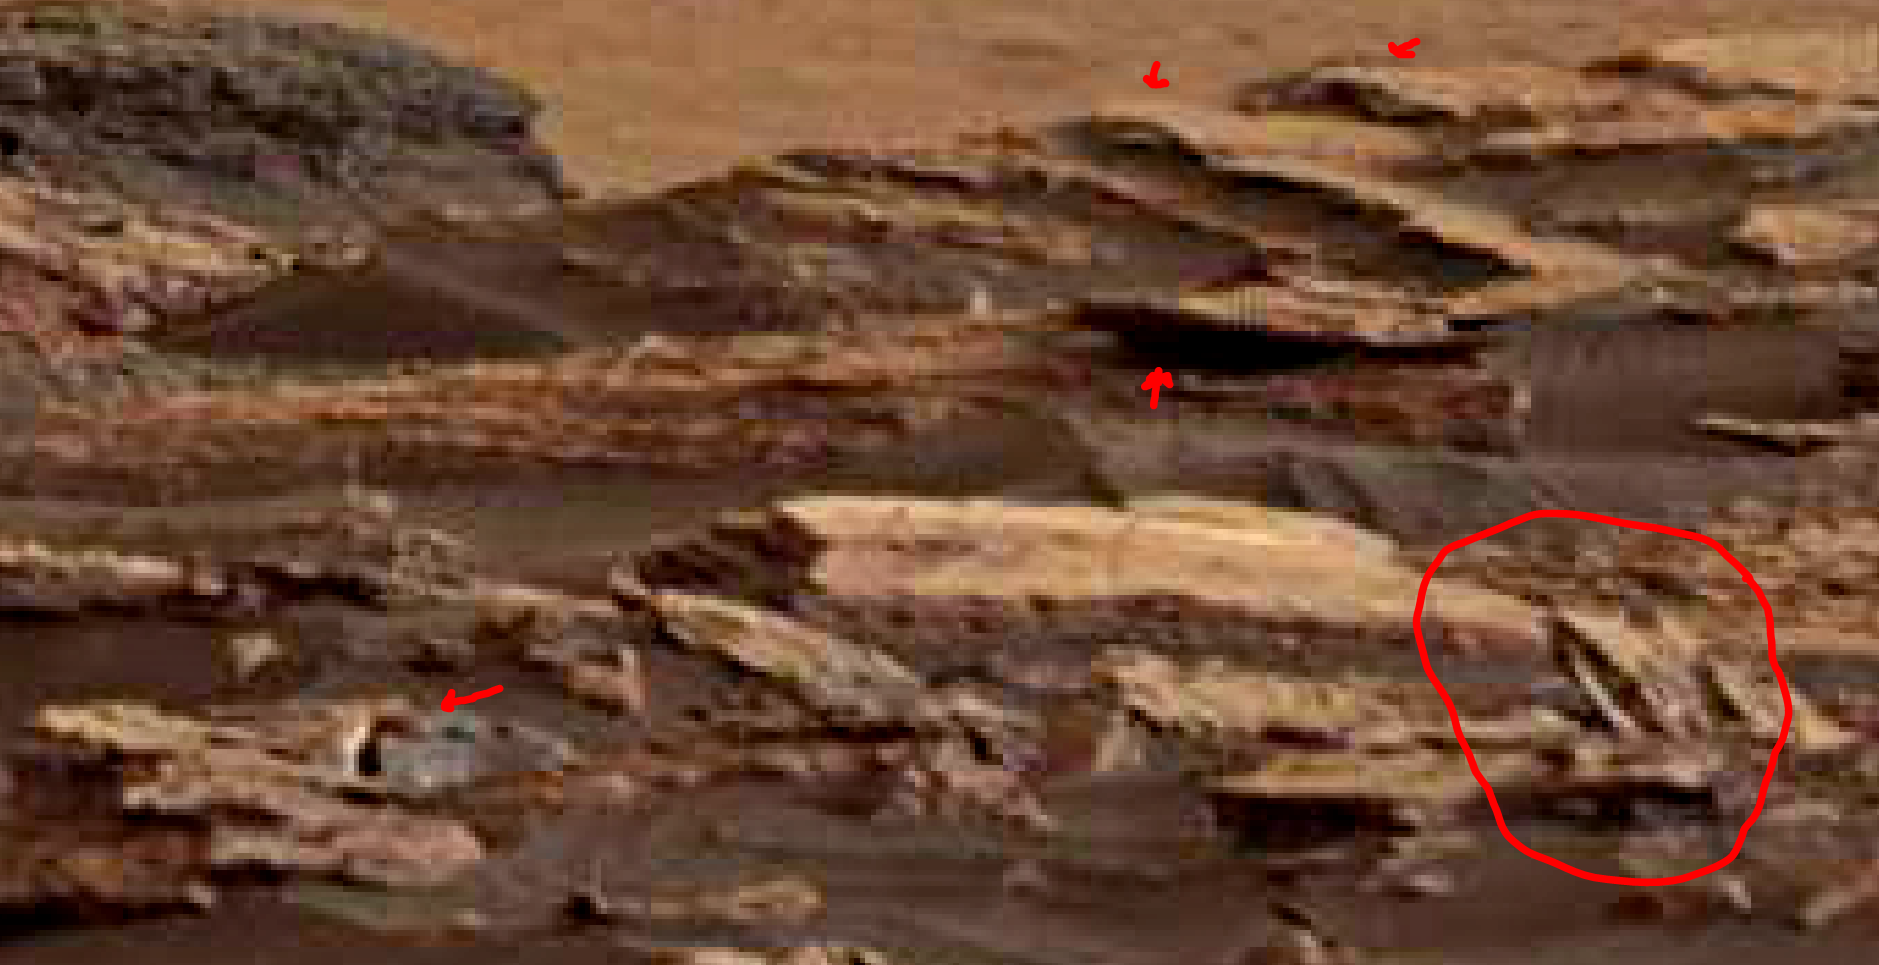 mars-sol-1508-anomaly-artifacts-3-was-life-on-mars